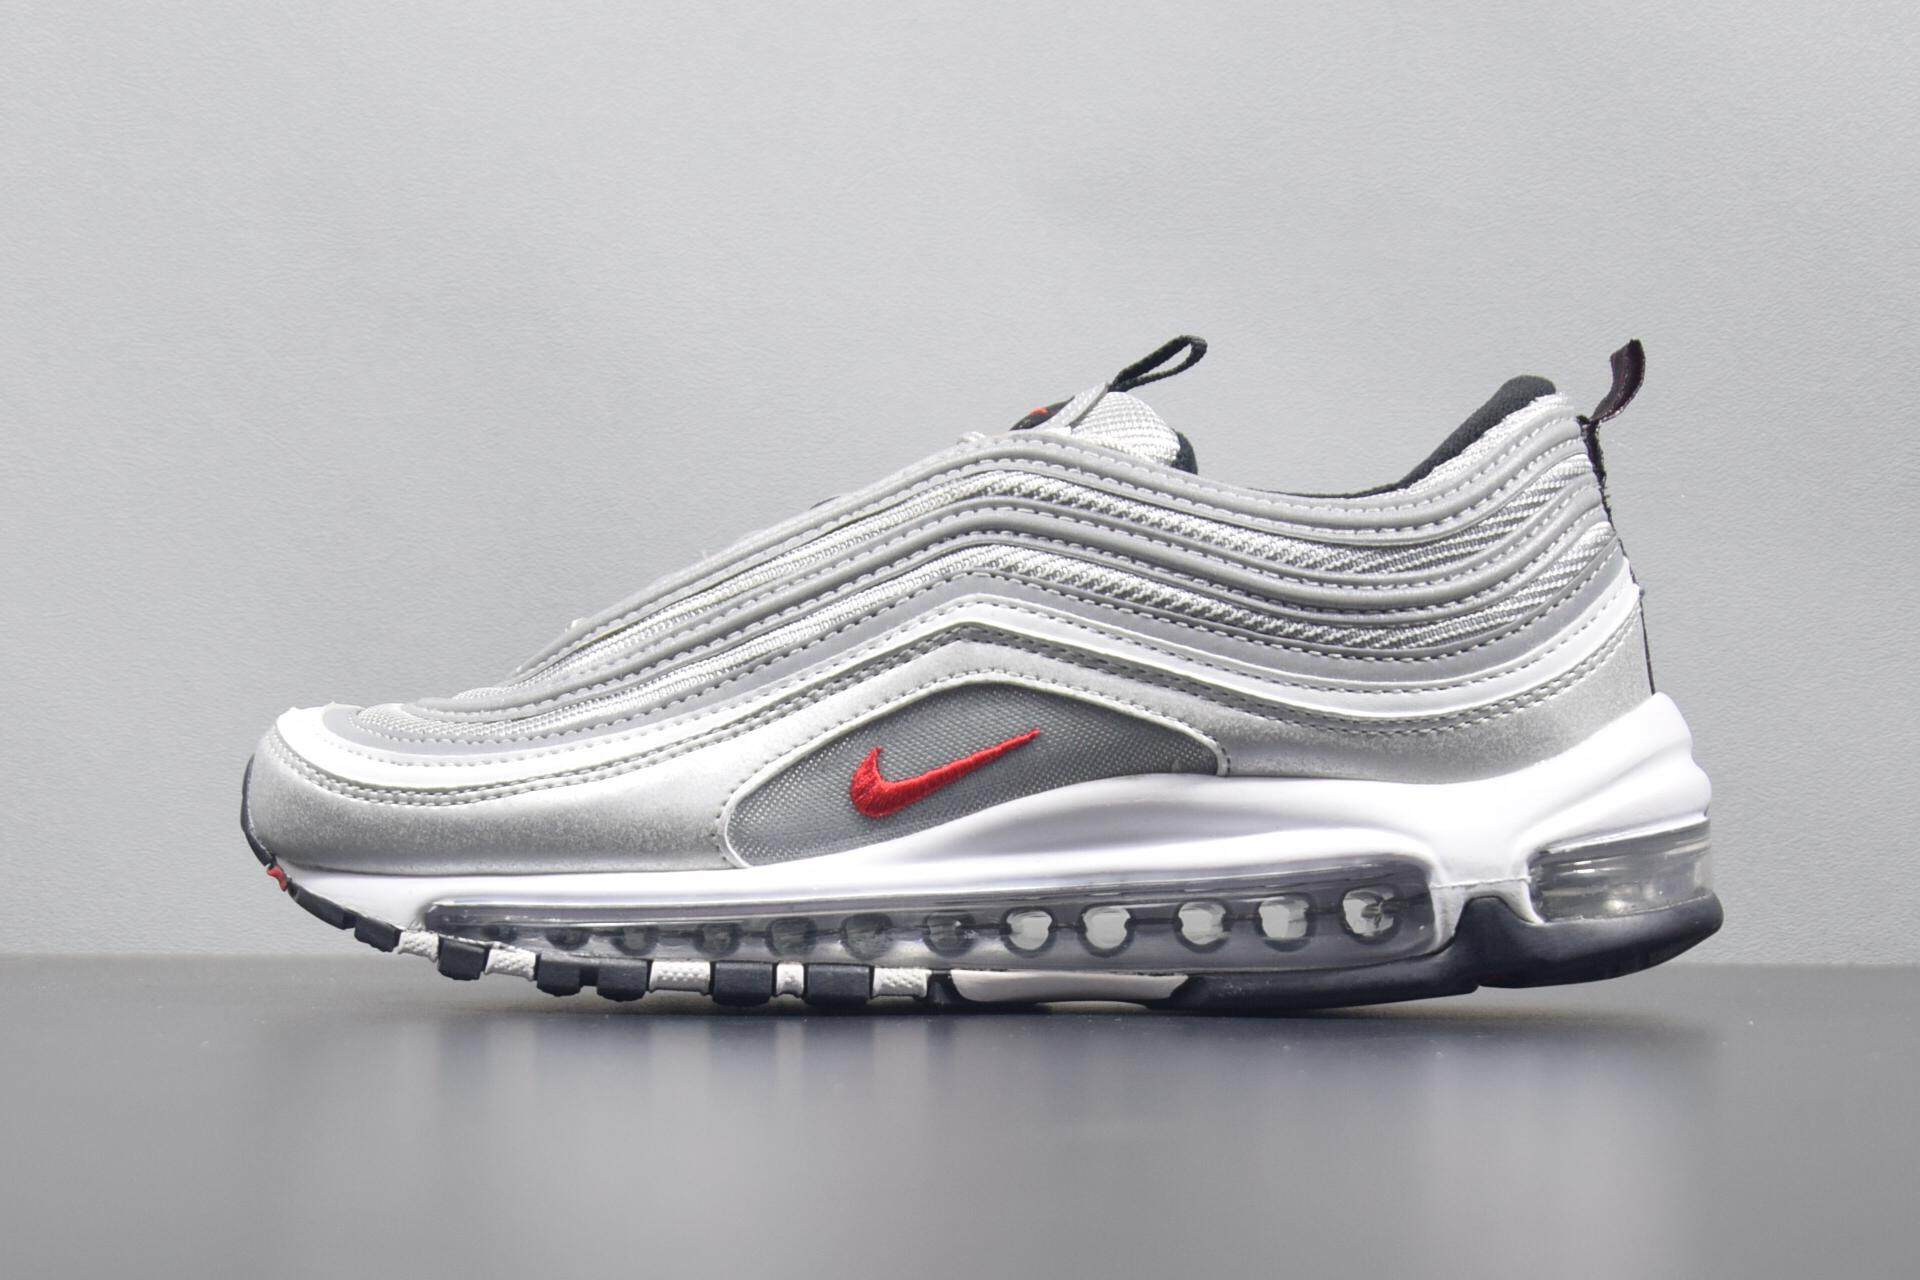 promo code 2468c defa0 2019 new genuine Nike Air Max 97 OG silver full palm sports cushion running  shoes men s